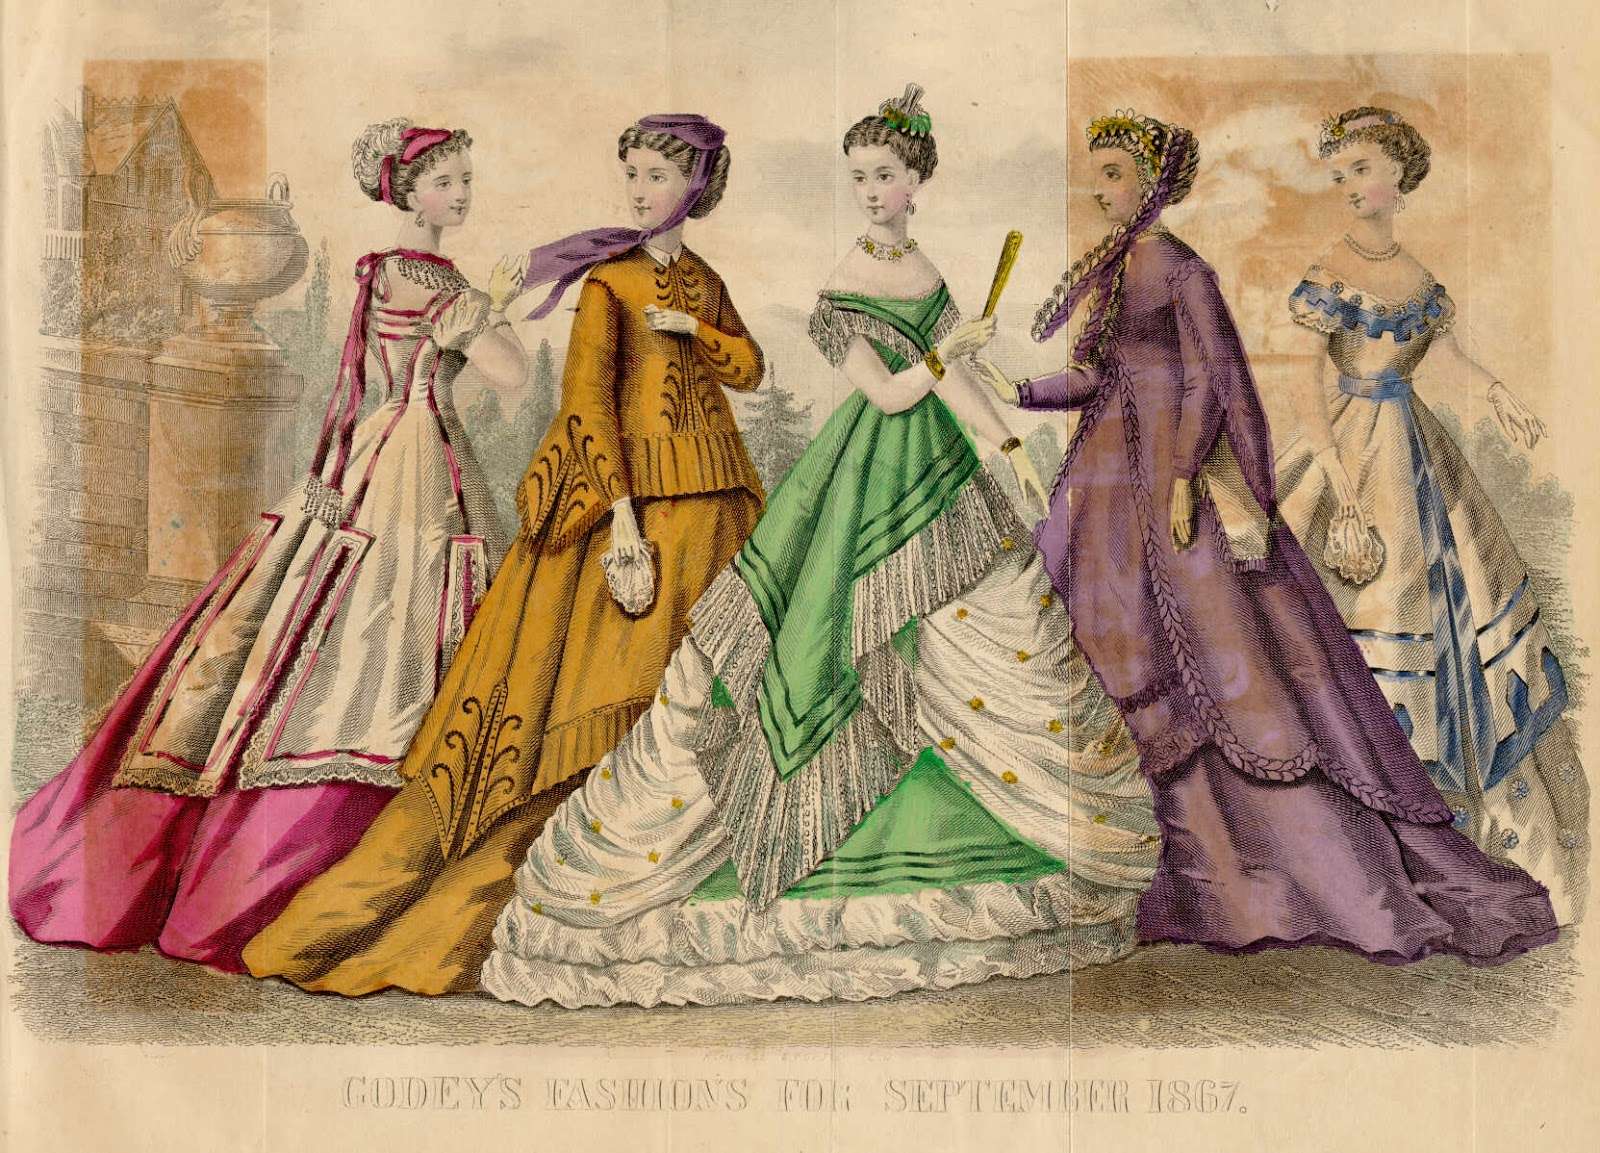 an illustration of society ladies from Gody's magazine